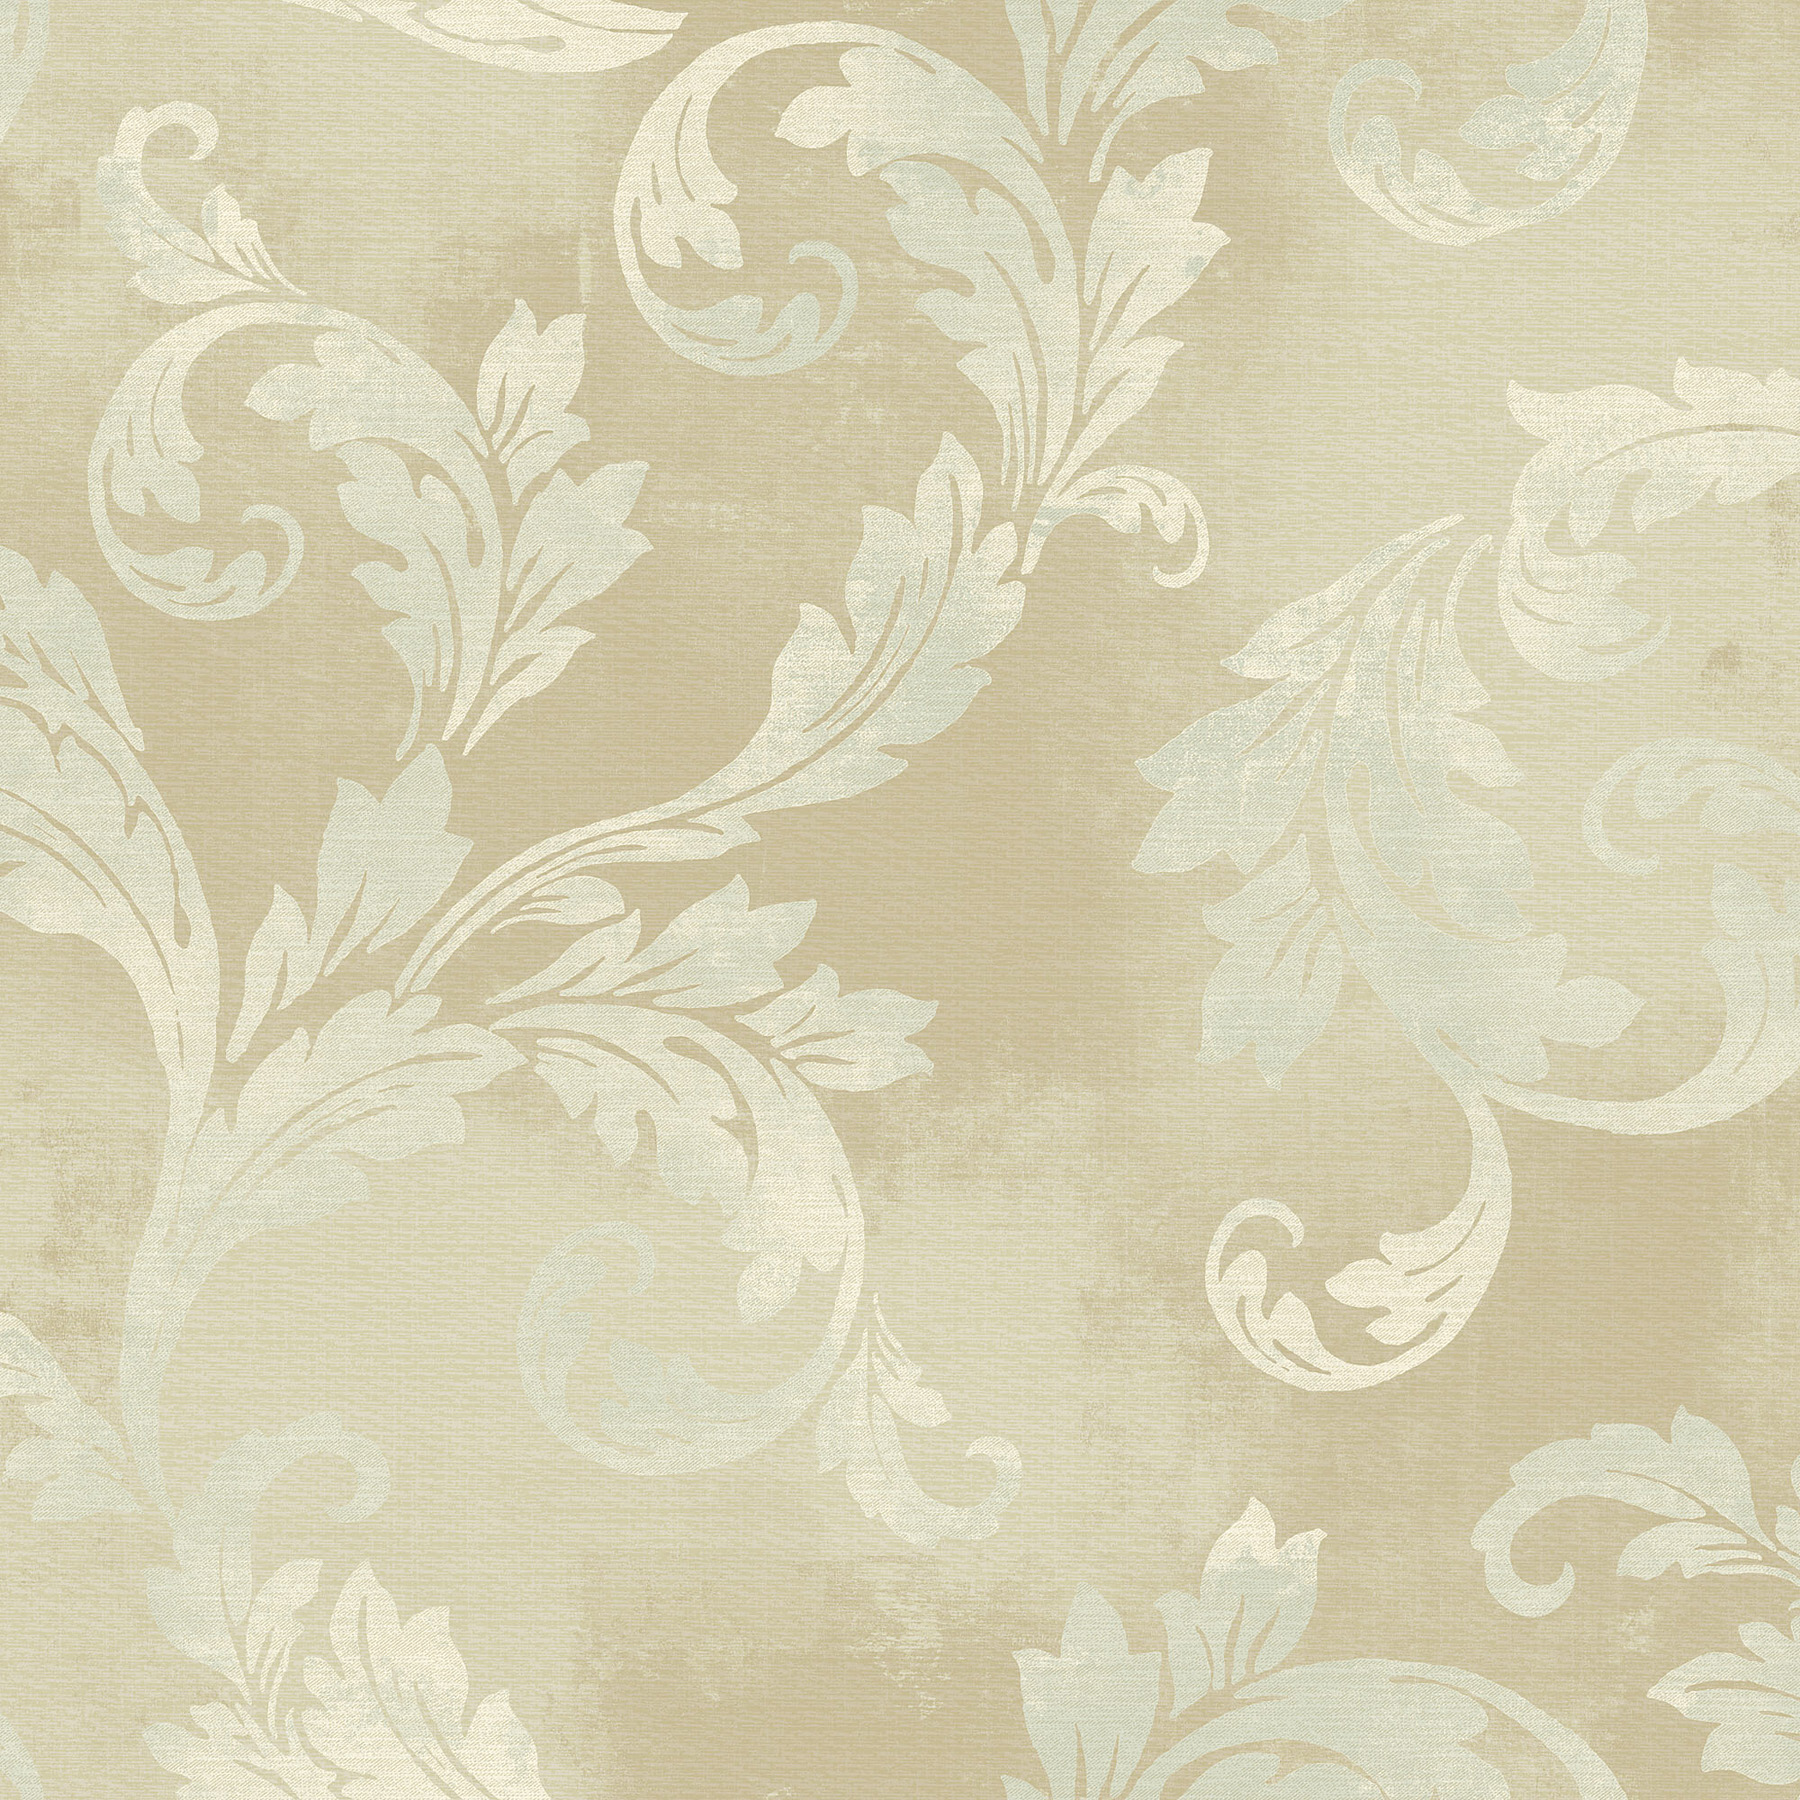 Picture of Brown Clean Acanthus Leaf Scroll Wallpaper